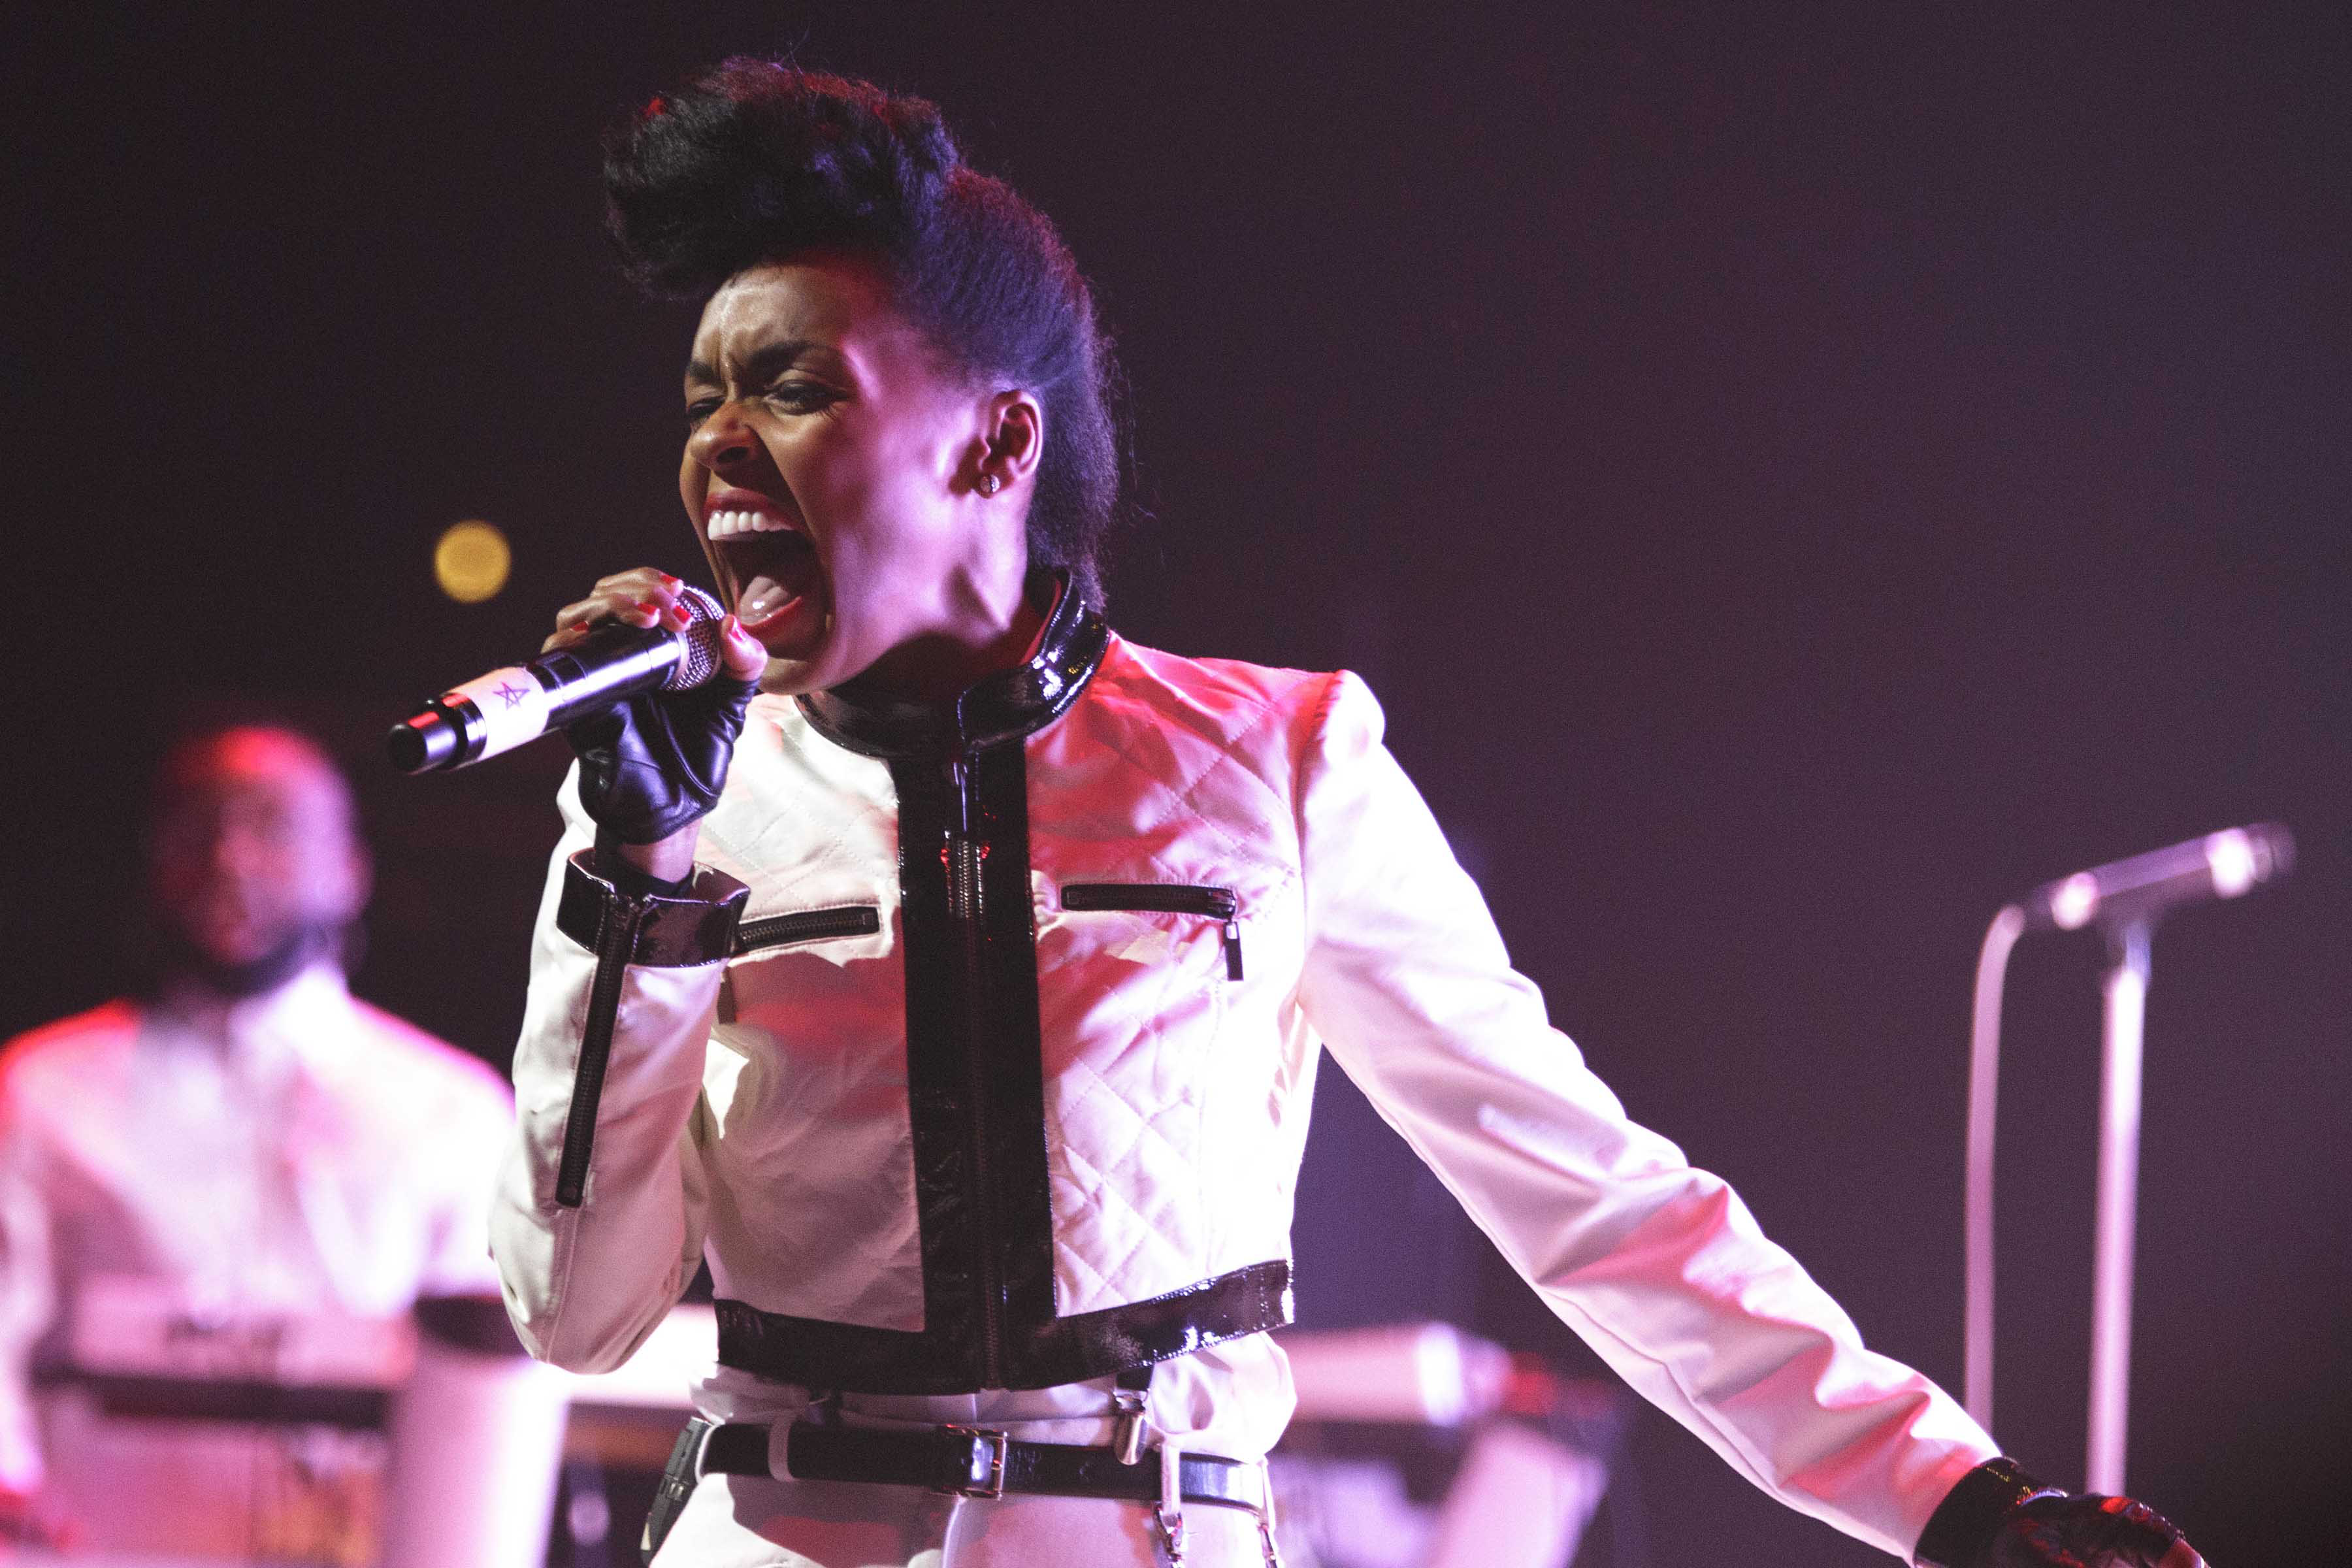 12 November 2013: Janelle Mon᝝e performs at Austin's ACL Live at Moody Theater in Austin Texas. (Photograph by Suzanne Cordeiro/Corbis via Getty Images)